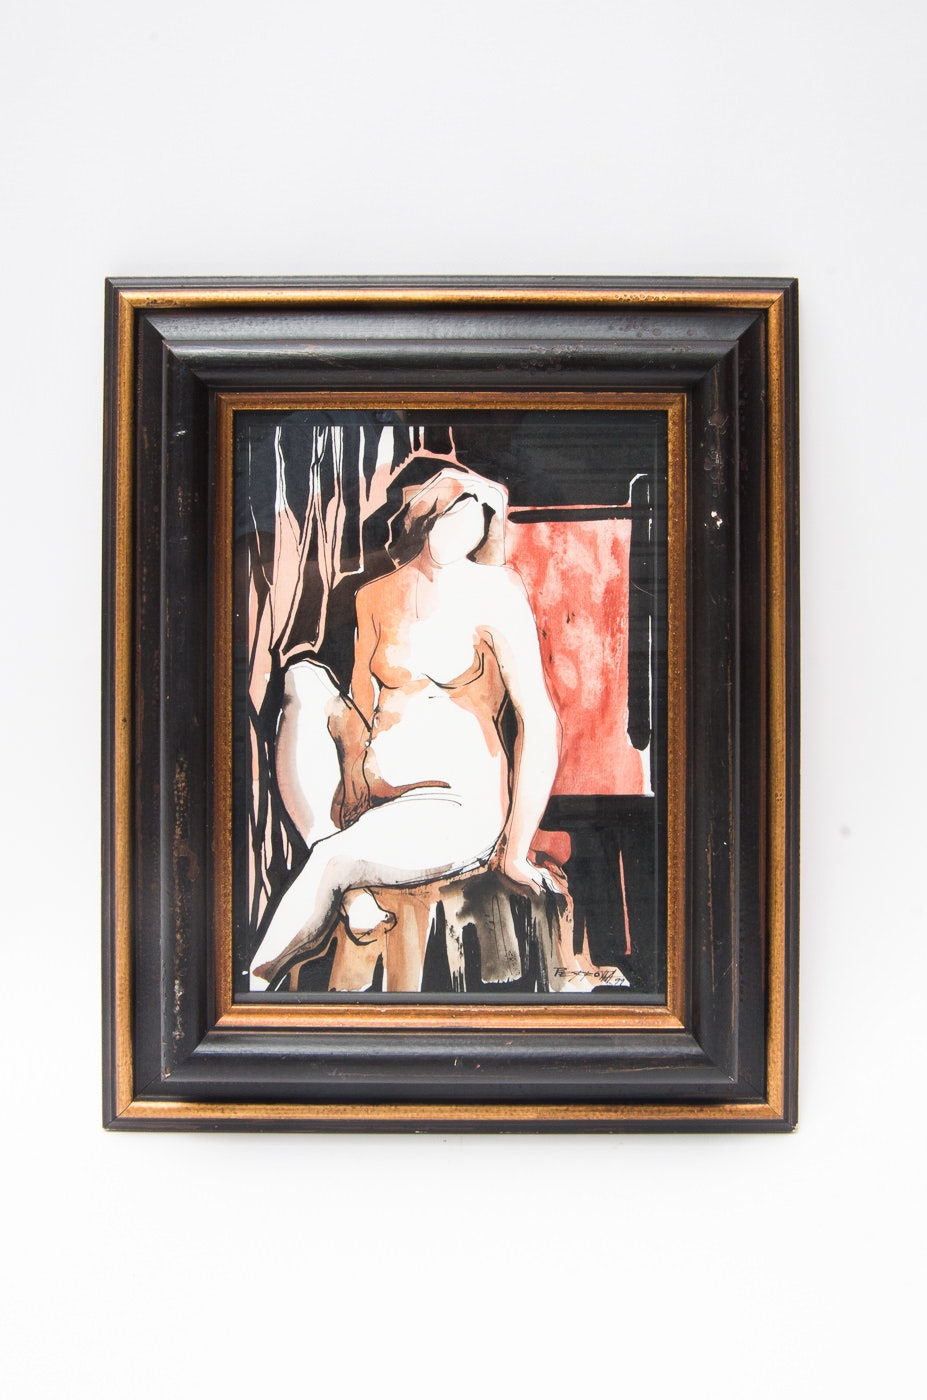 Framed Nude Watercolor Signed Perrotta